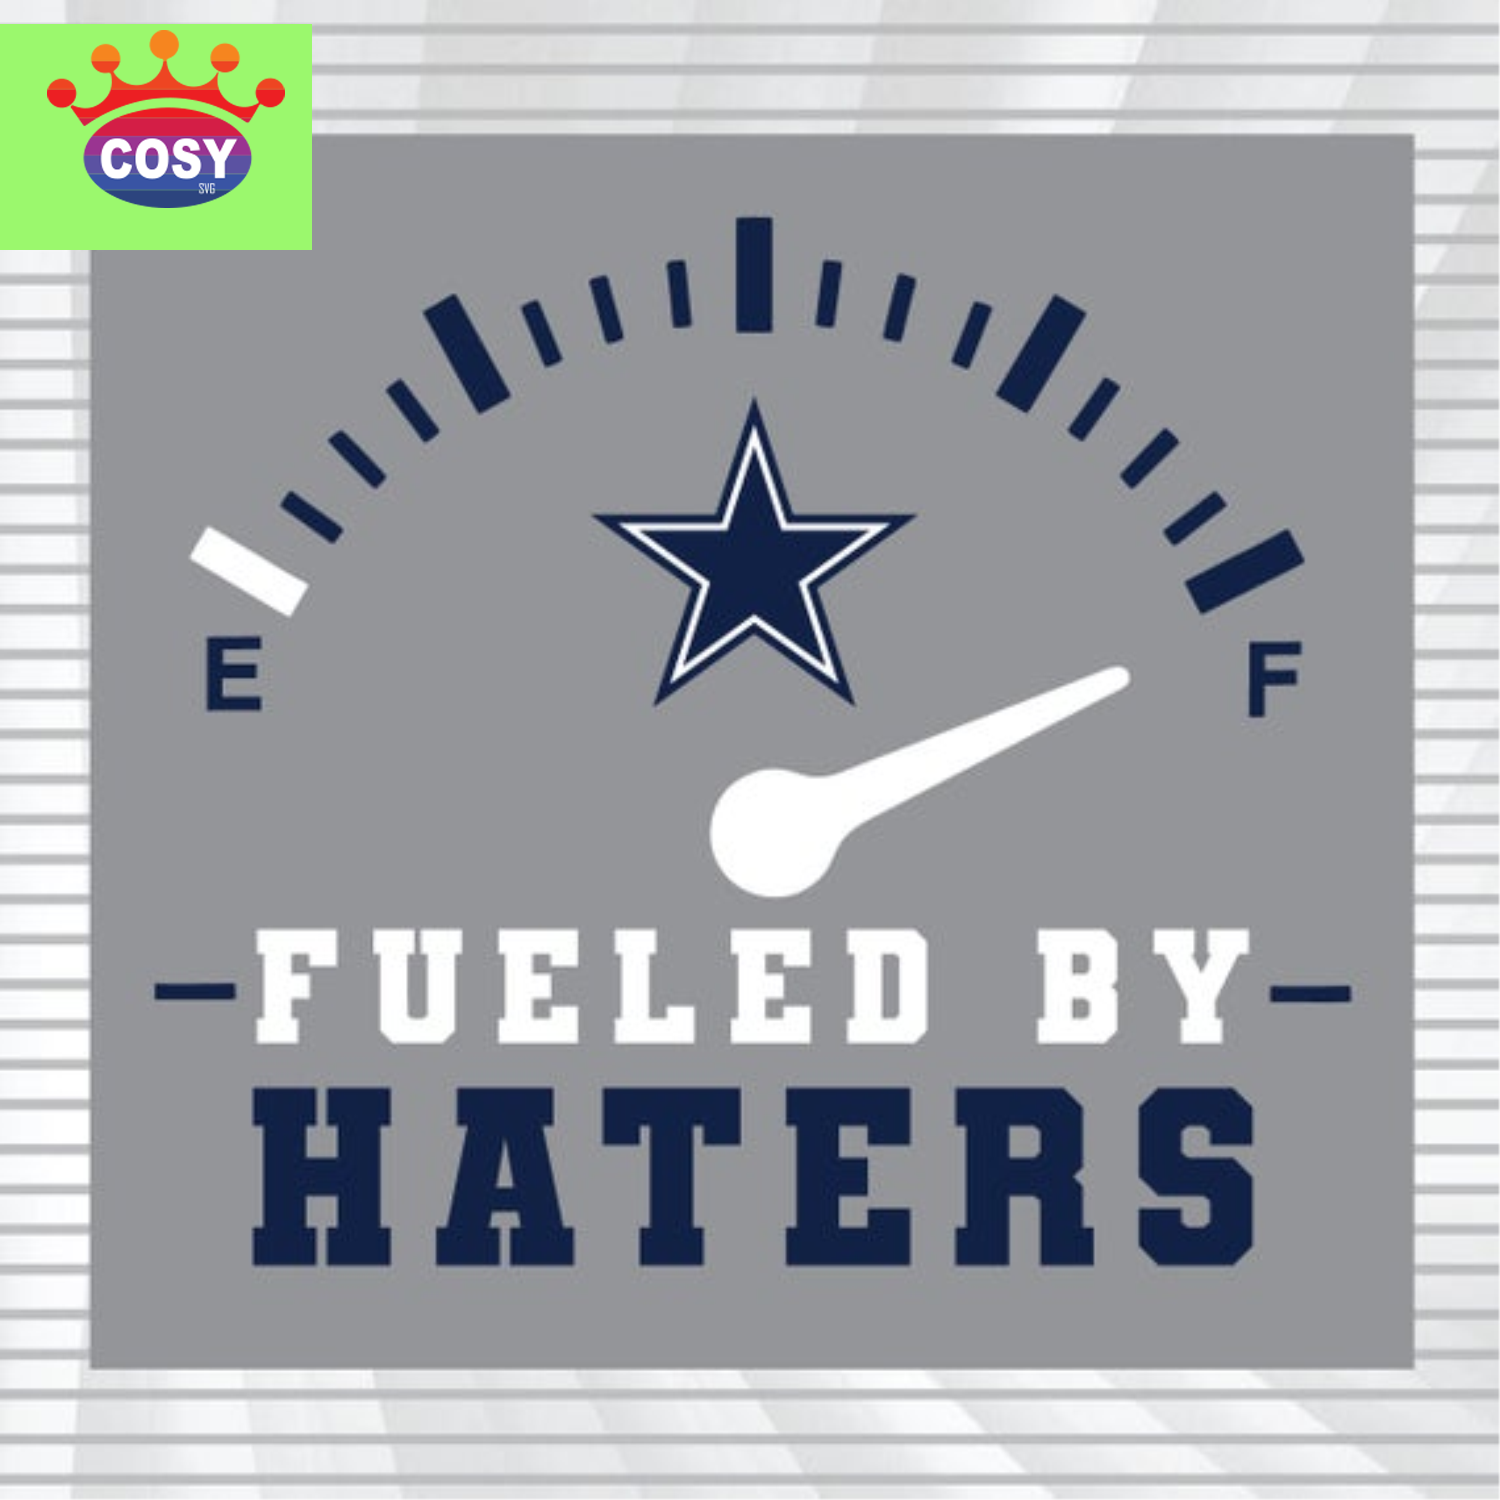 Dallas Cowboys Fueled By Haters Svg Nfl Lover Svg Cosysvg Com